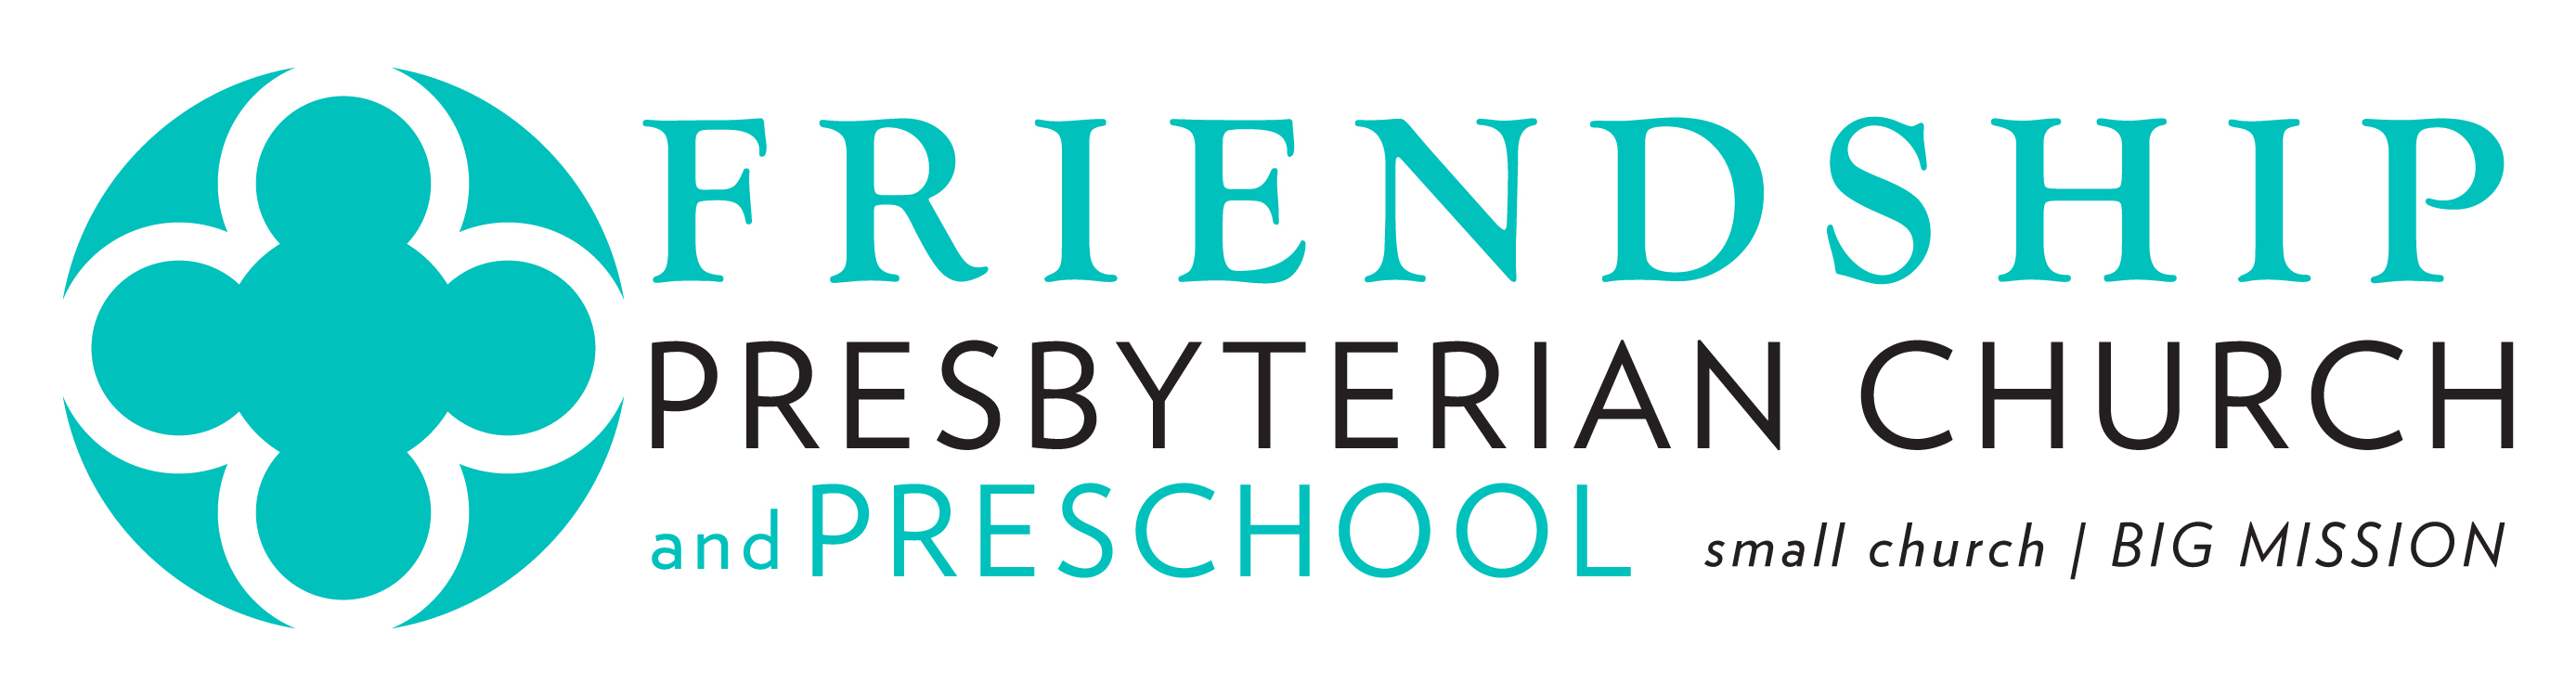 Friendship Presbyterian Preschool - Logo with black text - High Res for Print